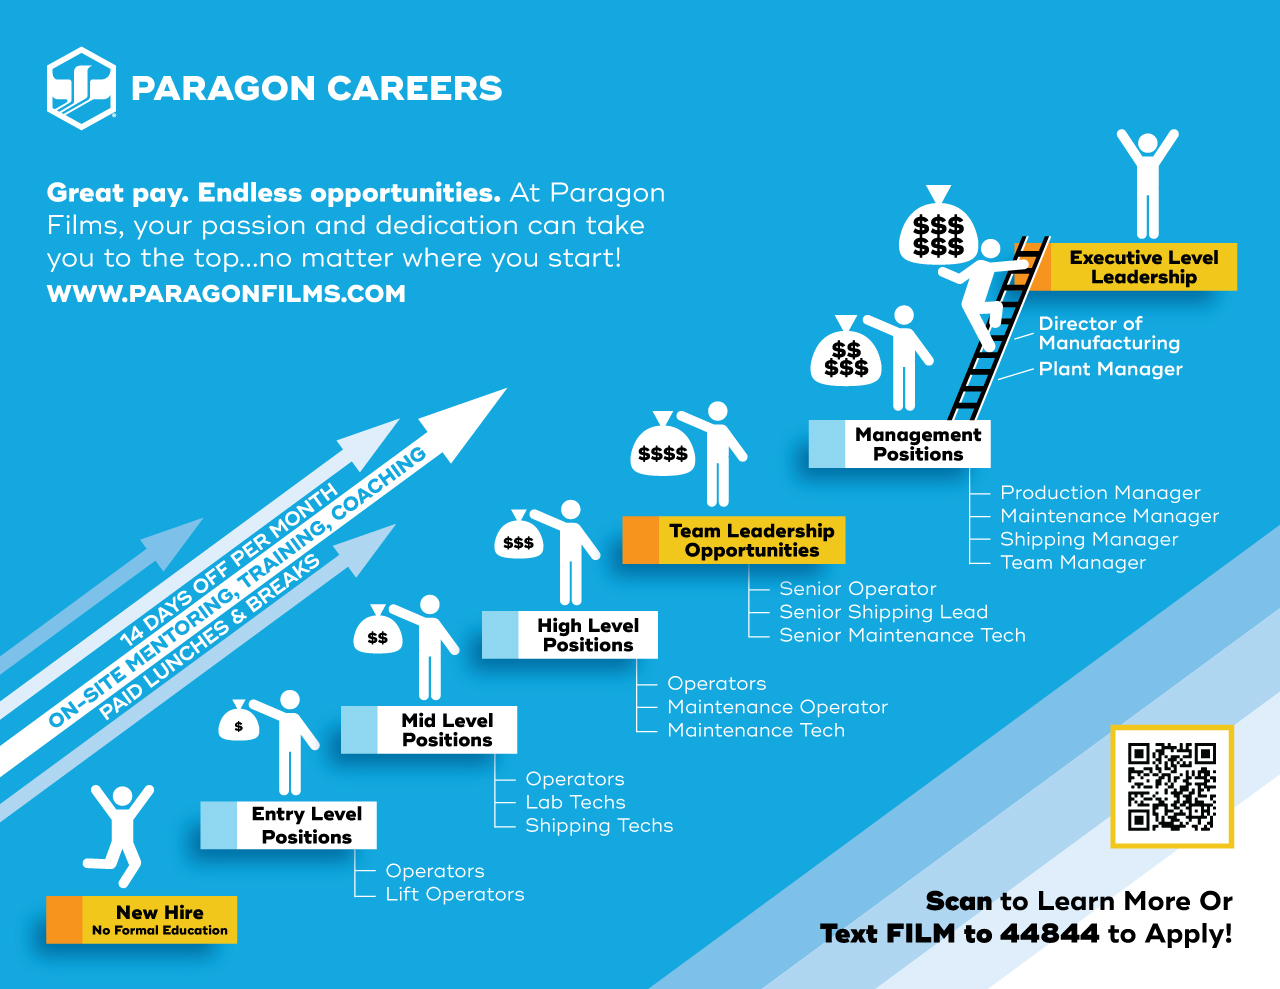 Production Careers at Paragon Films